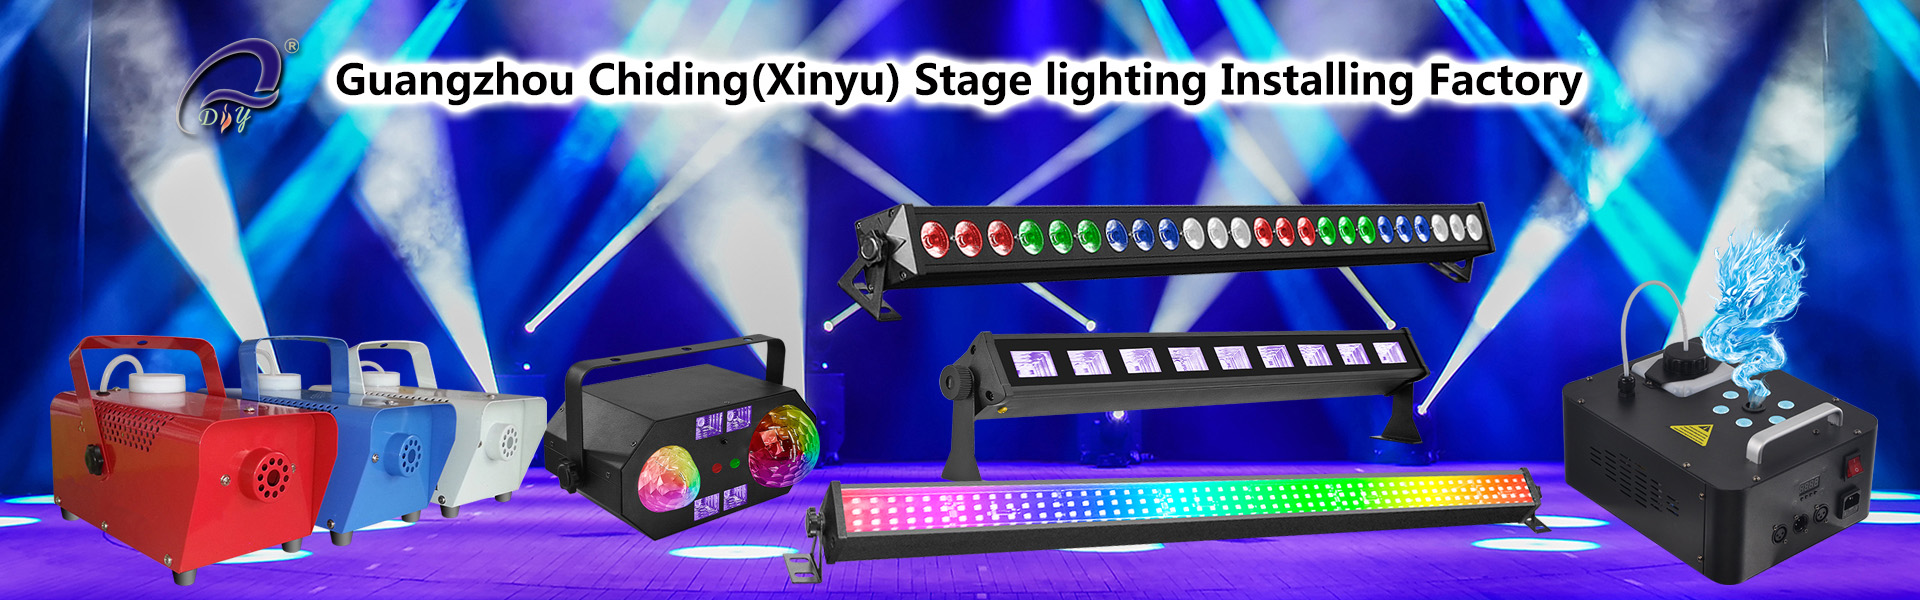 Faoi stiúir, 照明 ム ー,guangzhou chiding stage lighting co ltd